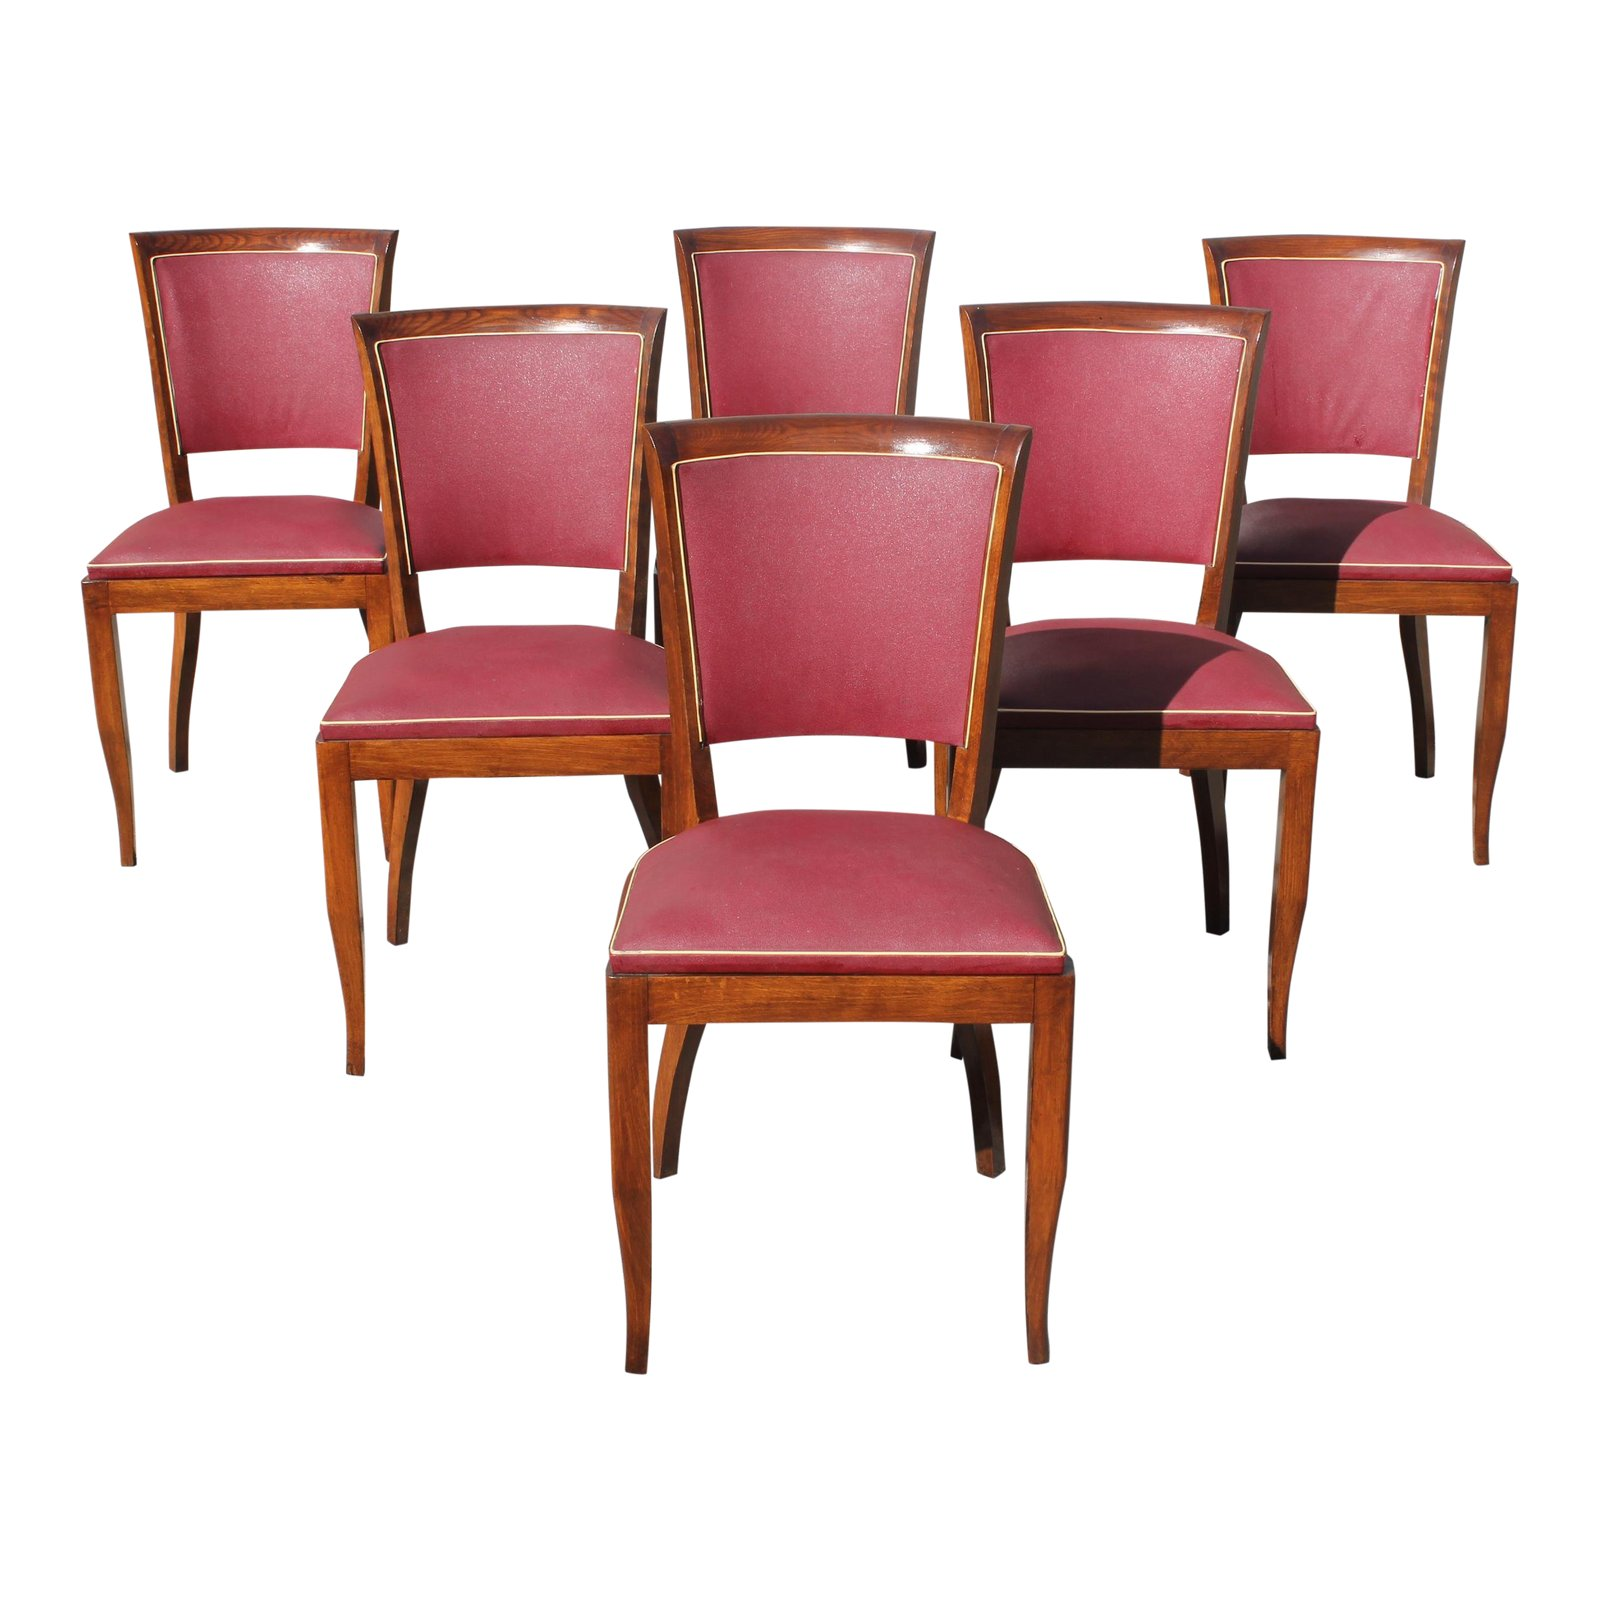 Art Deco Dining Chairs Beautiful Set Of 6 French Art Deco Solid Mahogany Dining Chairs Circa 1940s